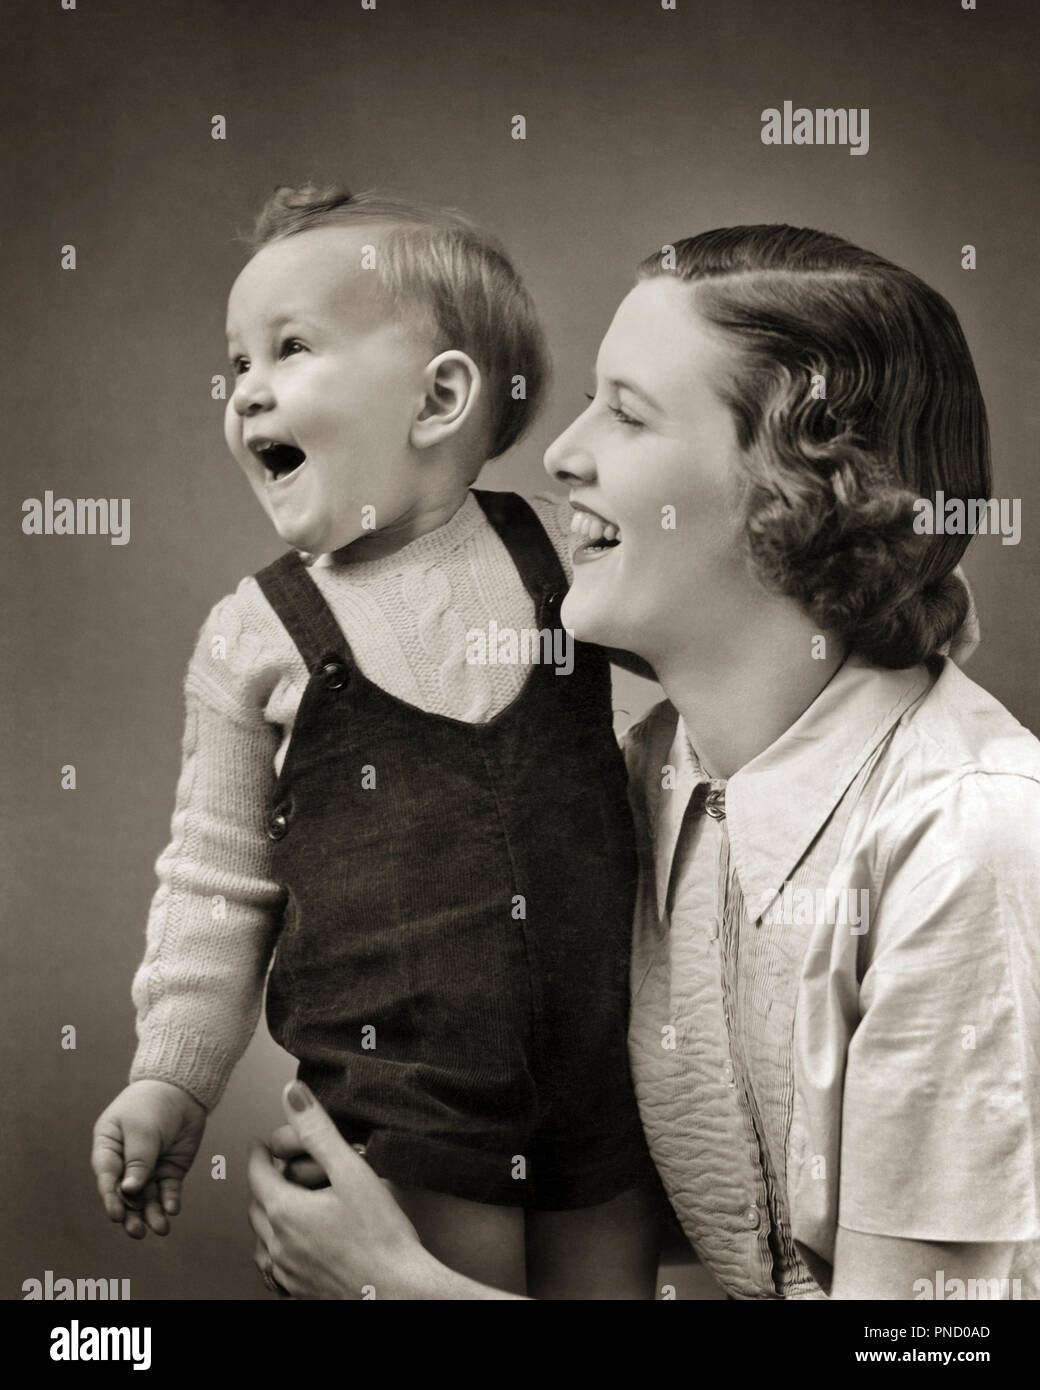 1940s LAUGHING BABY BOY TODDLER STANDING SUPPORTED BY